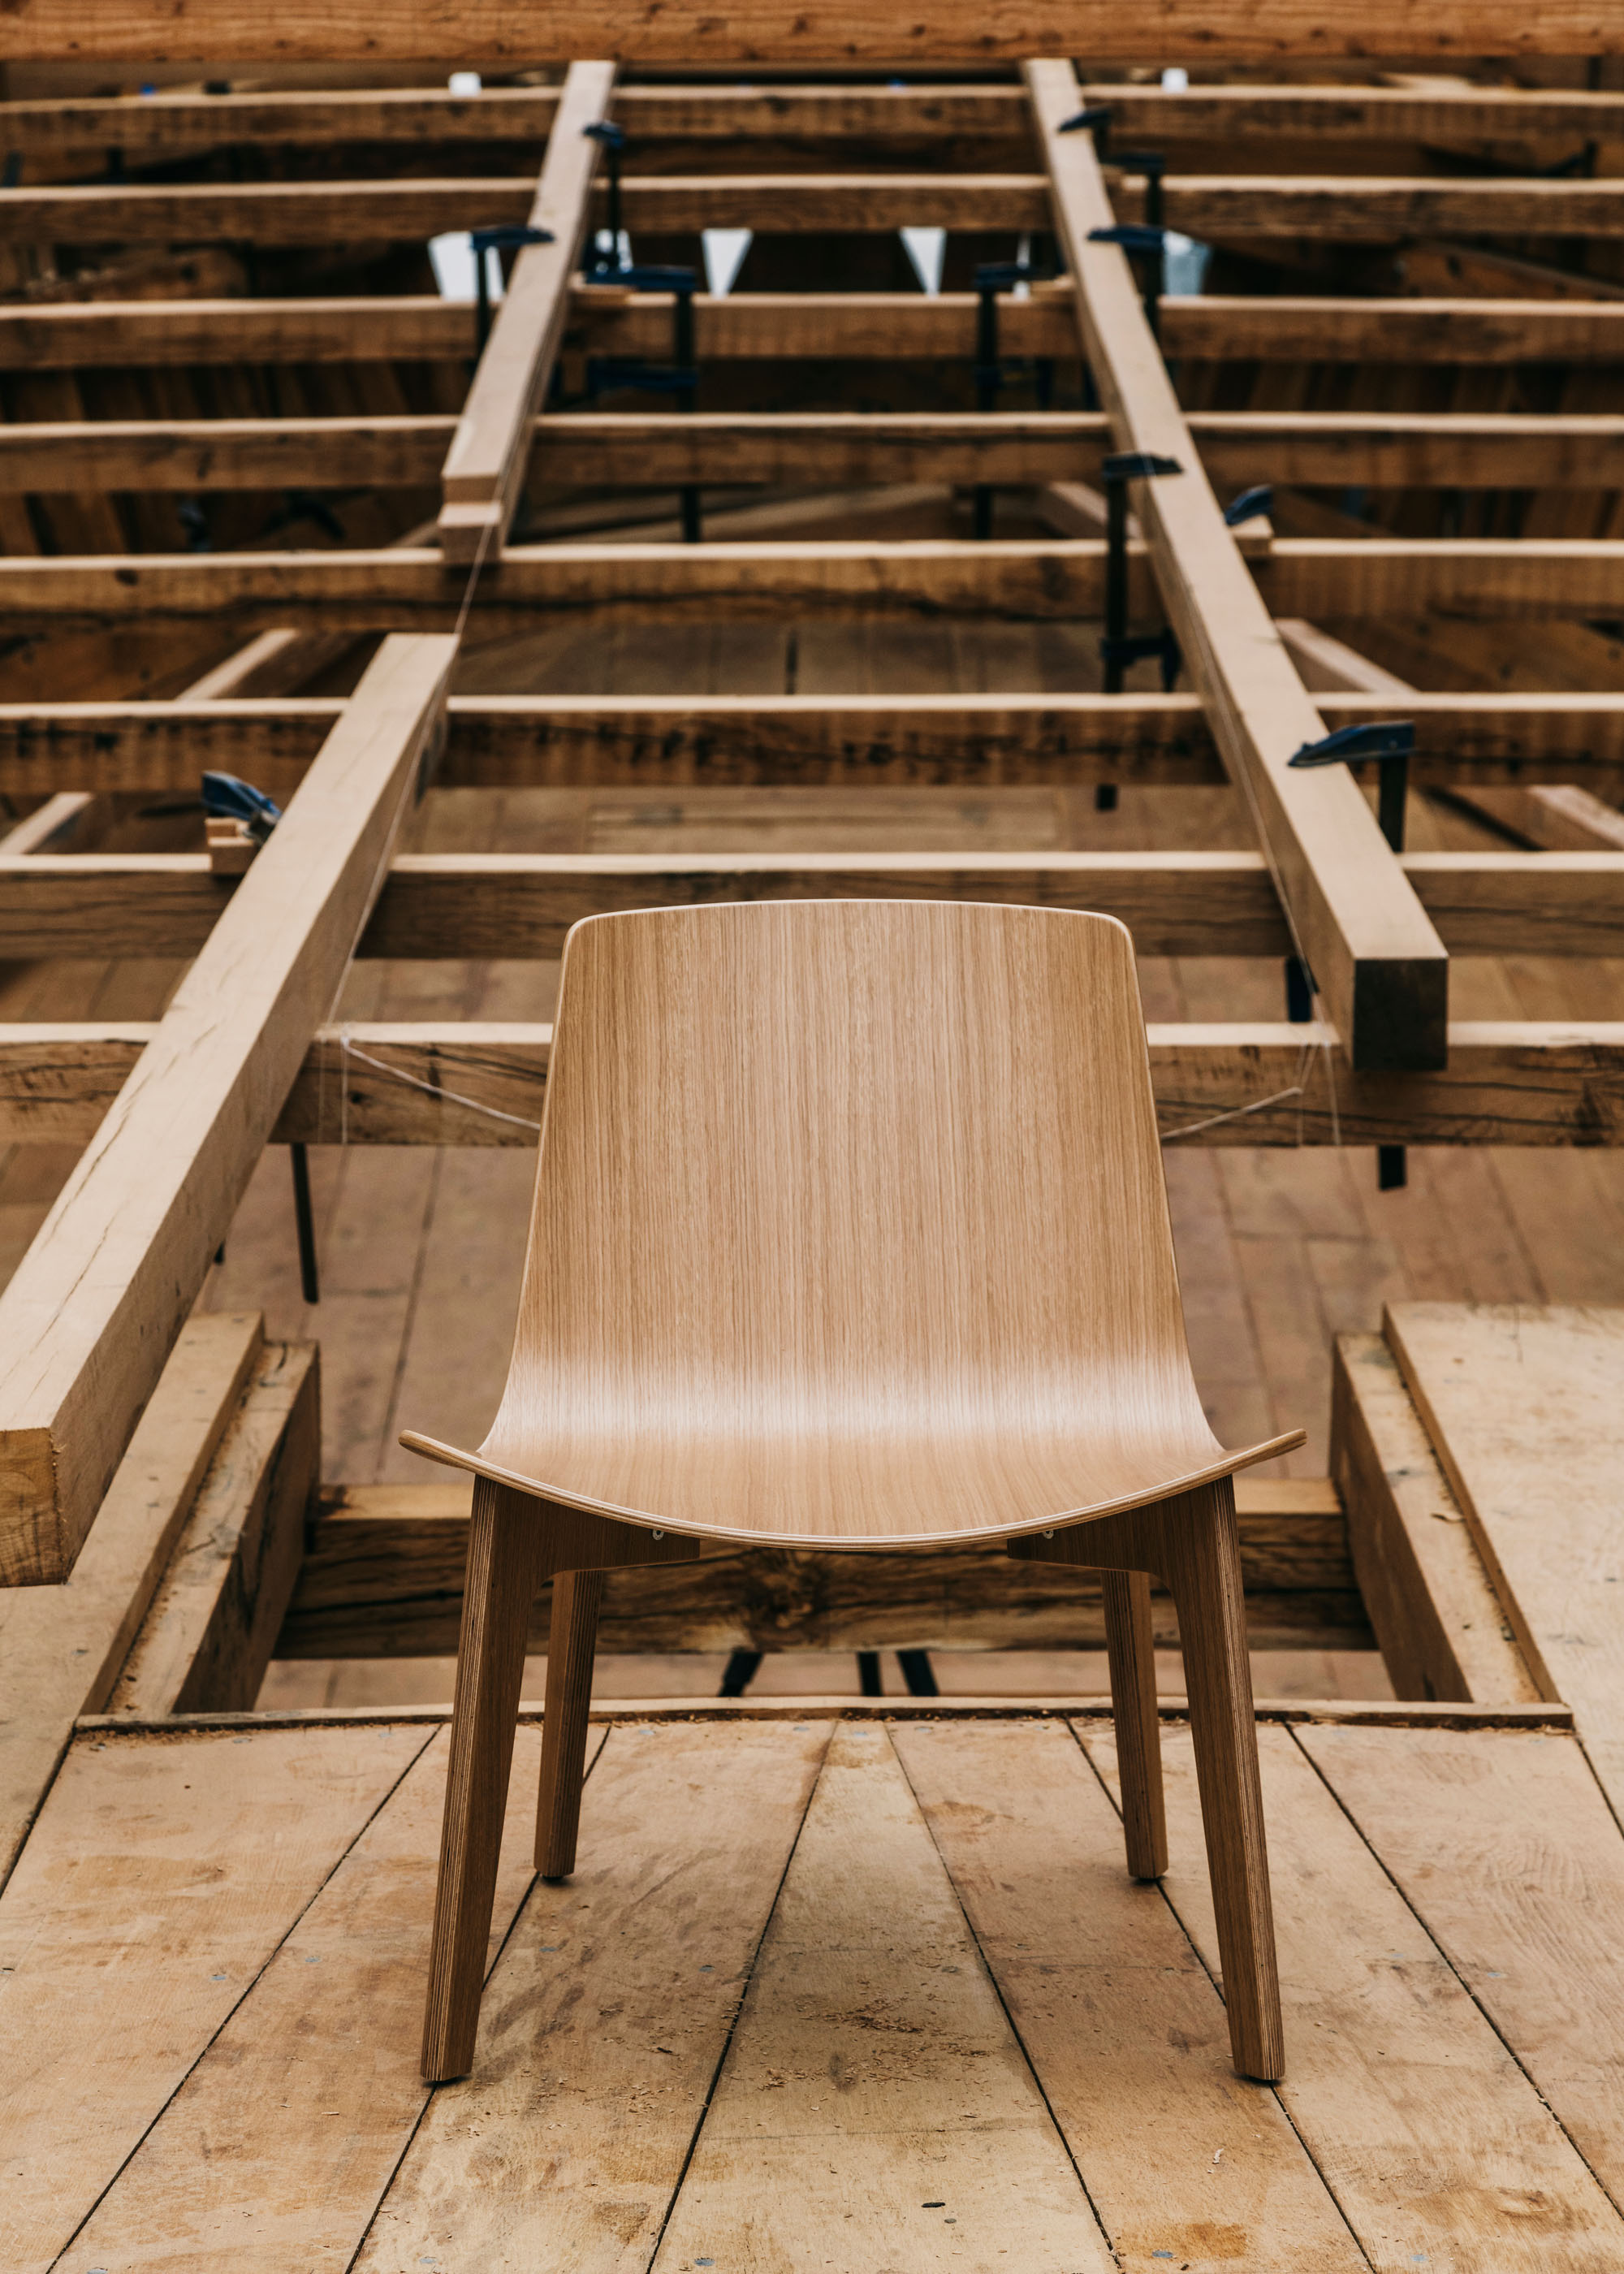 #furniture #enea #design #clase #basque #chairs #wood